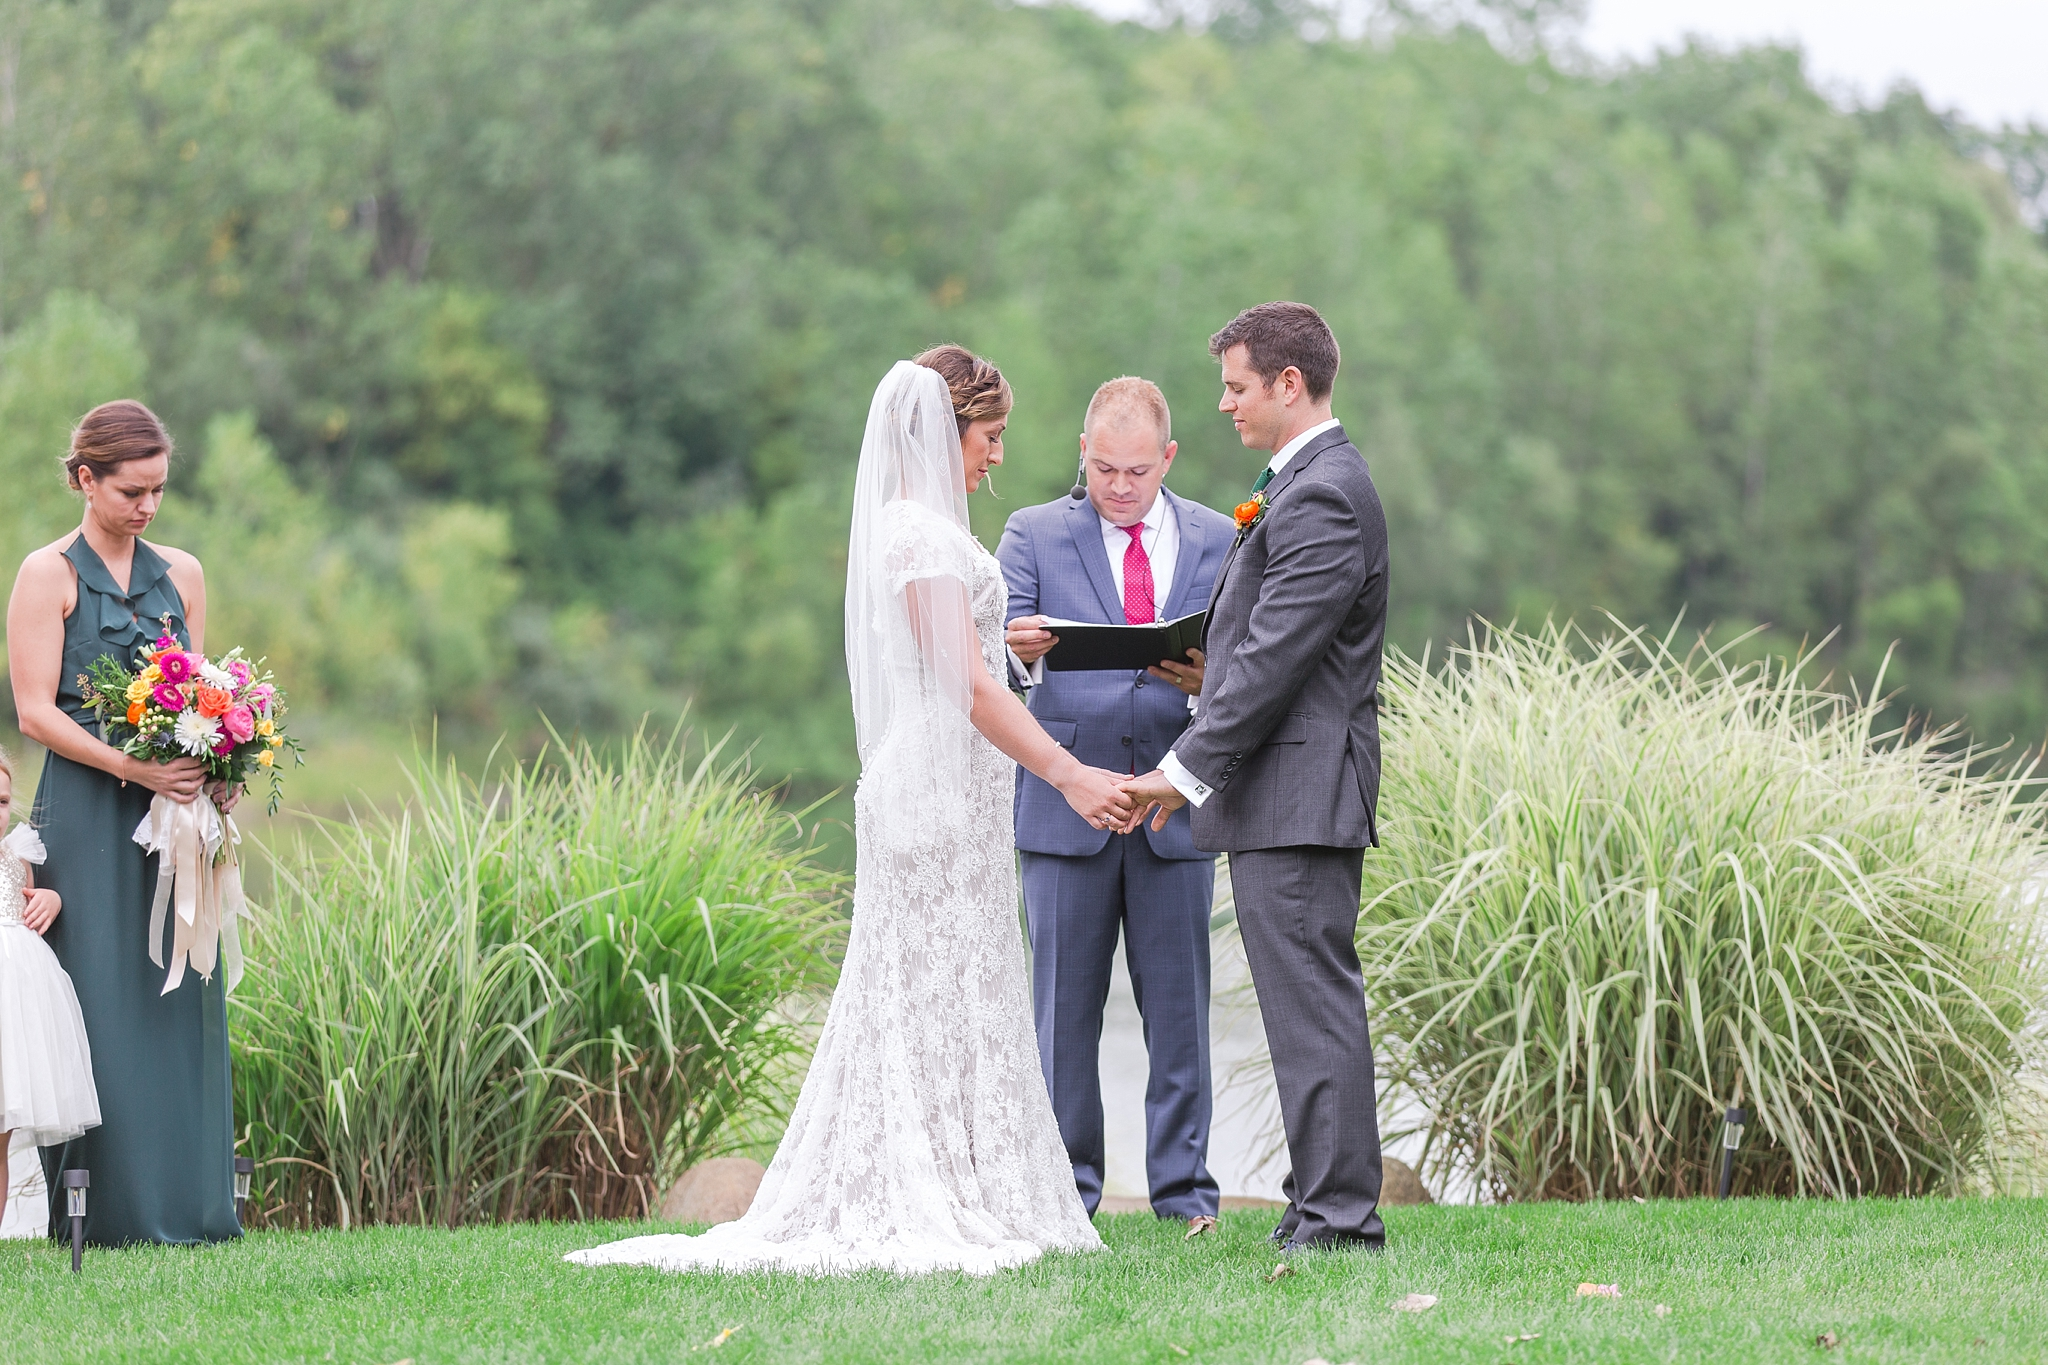 romantic-artful-candid-wedding-photos-in-detroit-lansing-ann-arbor-northern-michigan-and-chicago-by-courtney-carolyn-photography_0031.jpg